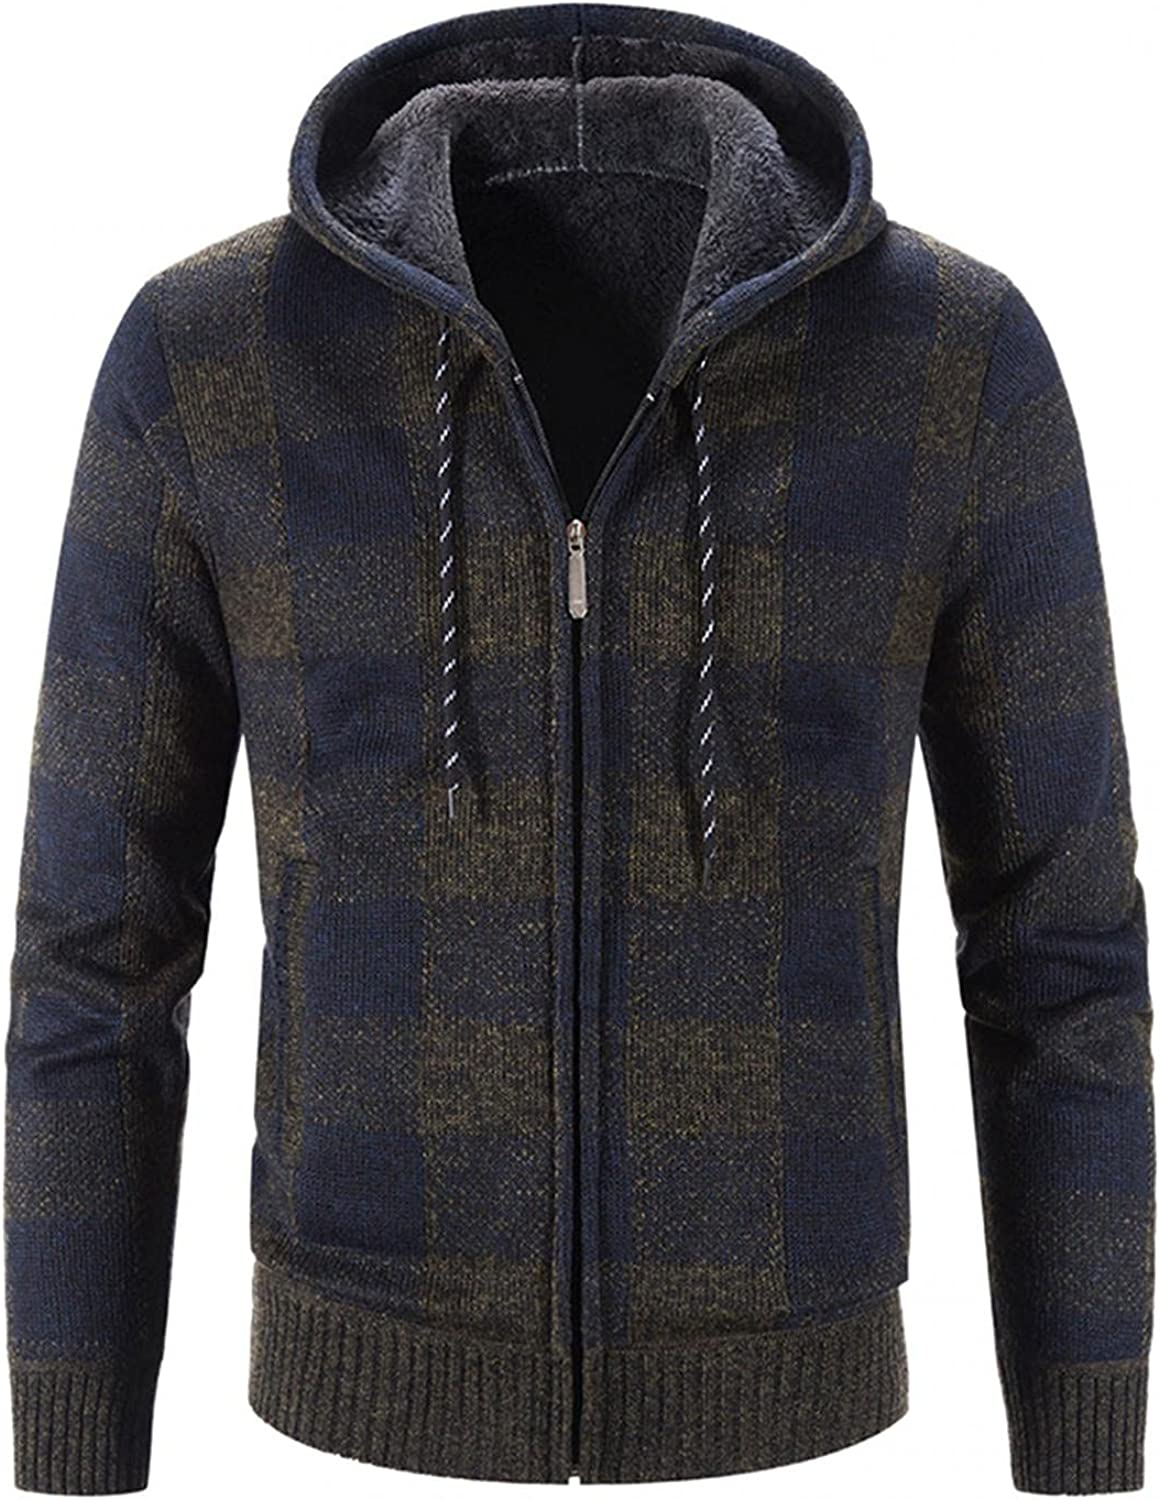 LEIYAN Mens Plaid Flannel Hooded Sweater Jacket Zip Up Long Sleeve Thicken Warm Open Front Cardigan Overcoat Plus Size